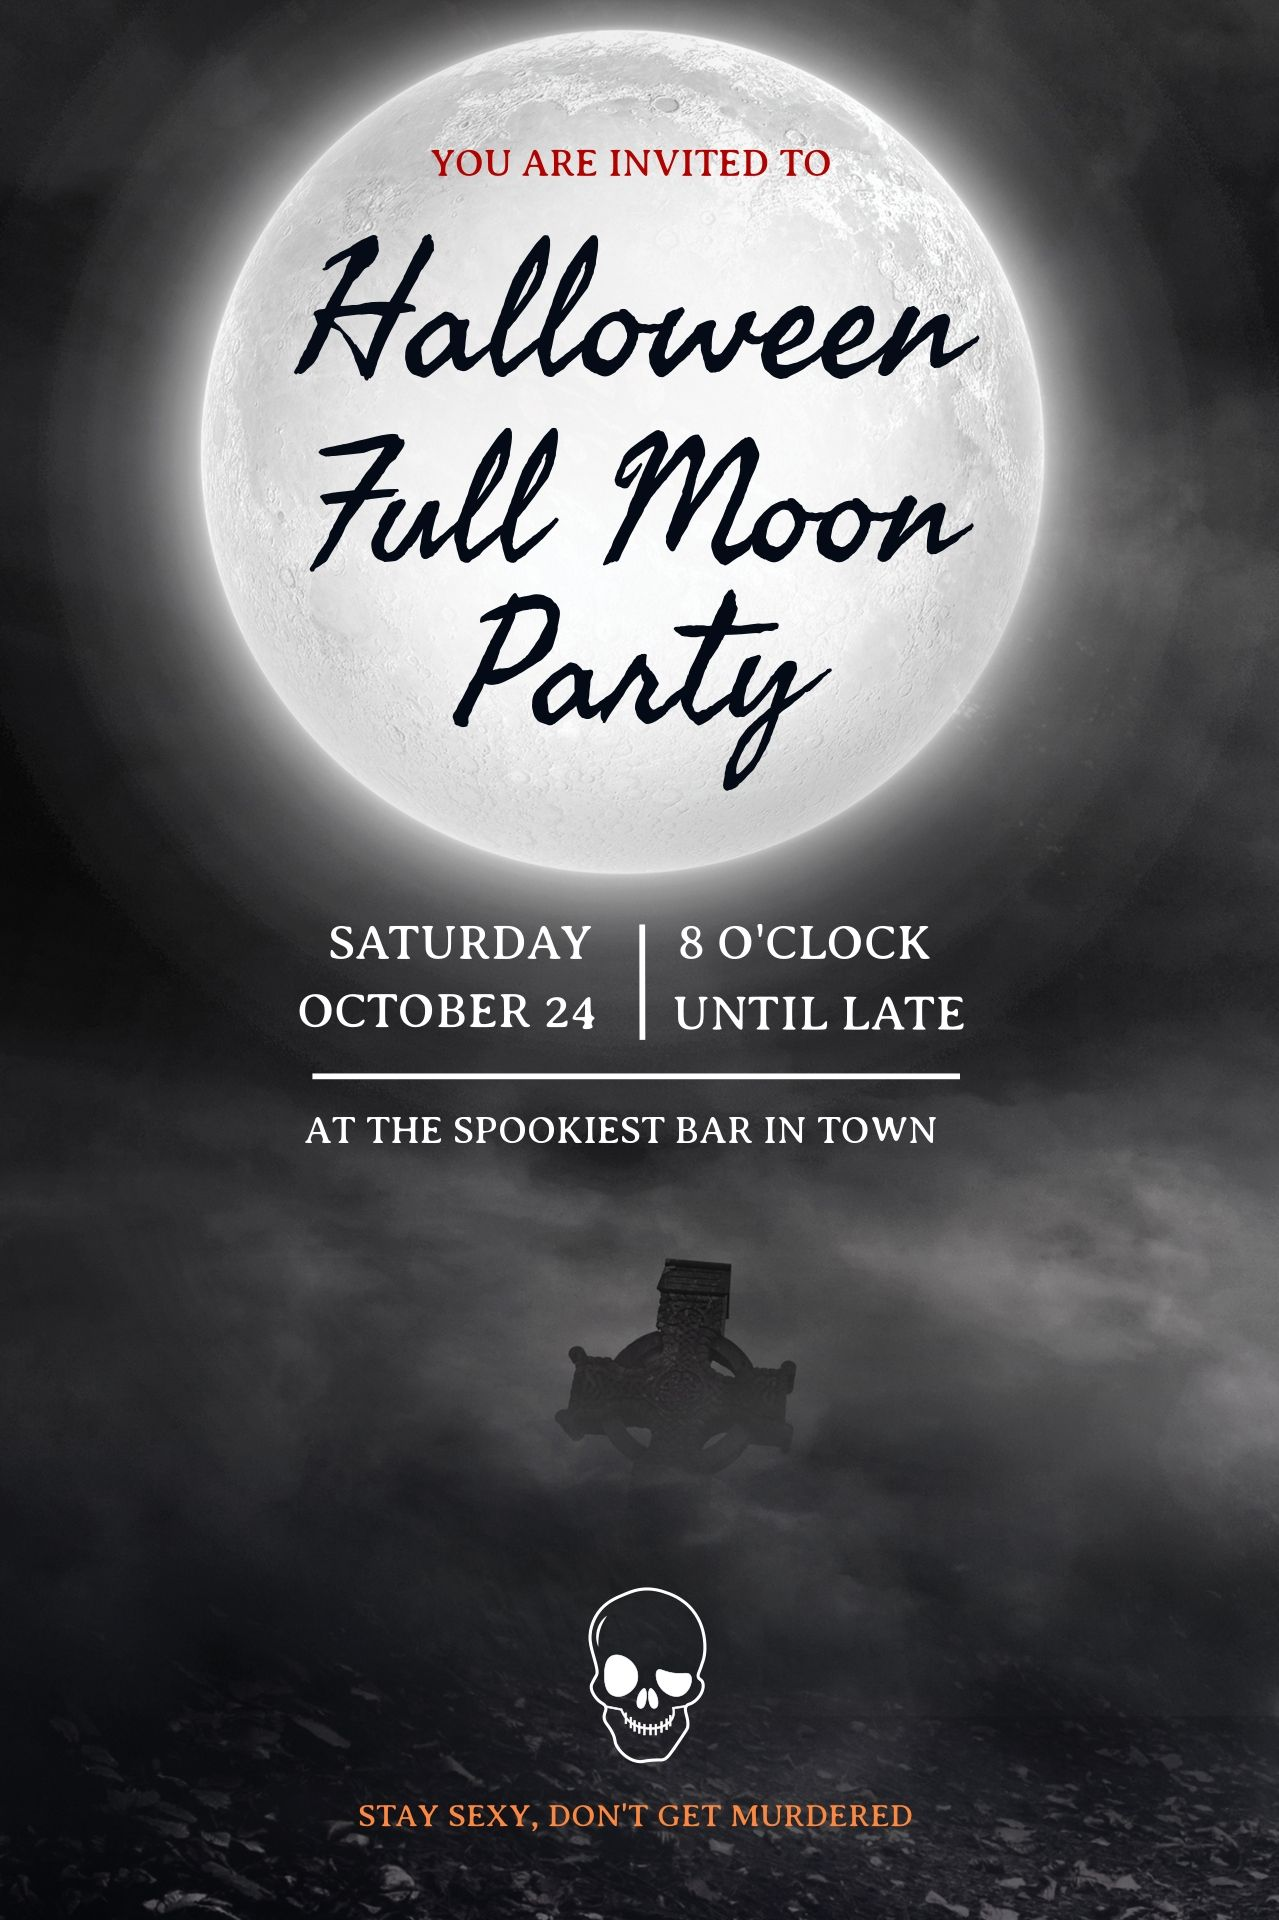 Full Moon Over A Grave On A Costumizable And Printable Halloween Full Moon Party Halloween Party Invitation Template Party Invite Template Halloween Full Moon